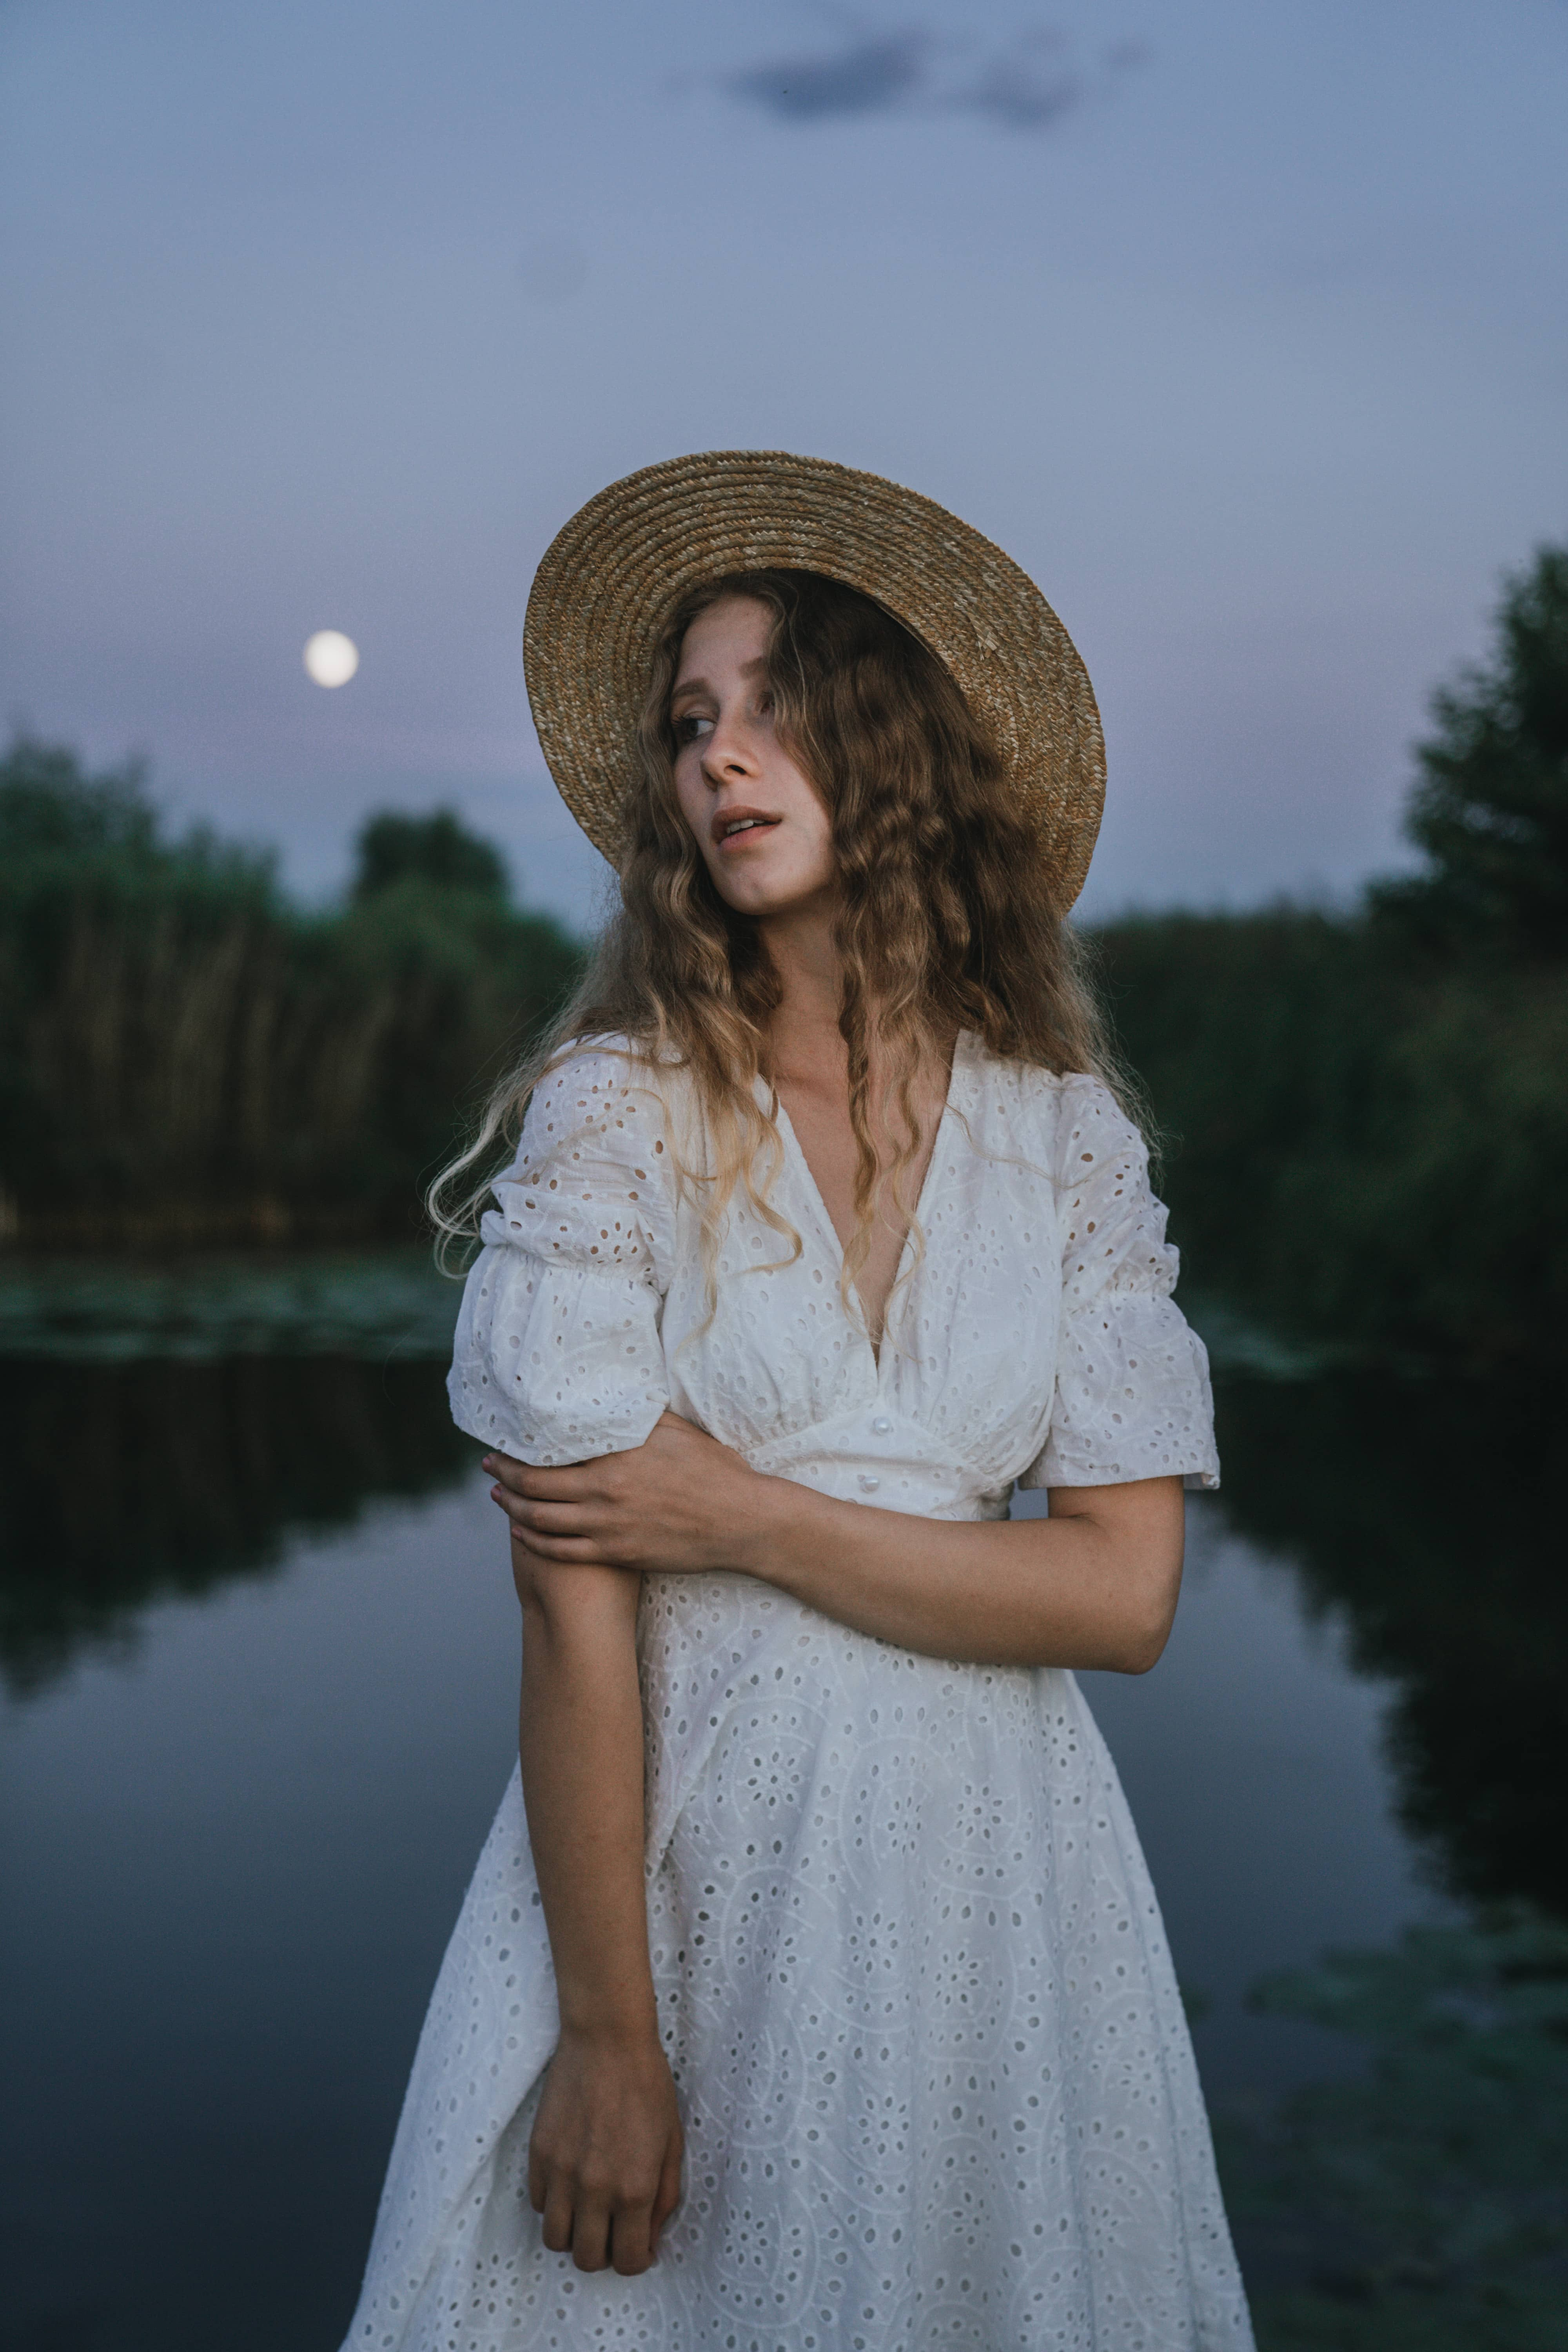 Girl with fashionable white dress wearing a hat standing at the water in moonlight